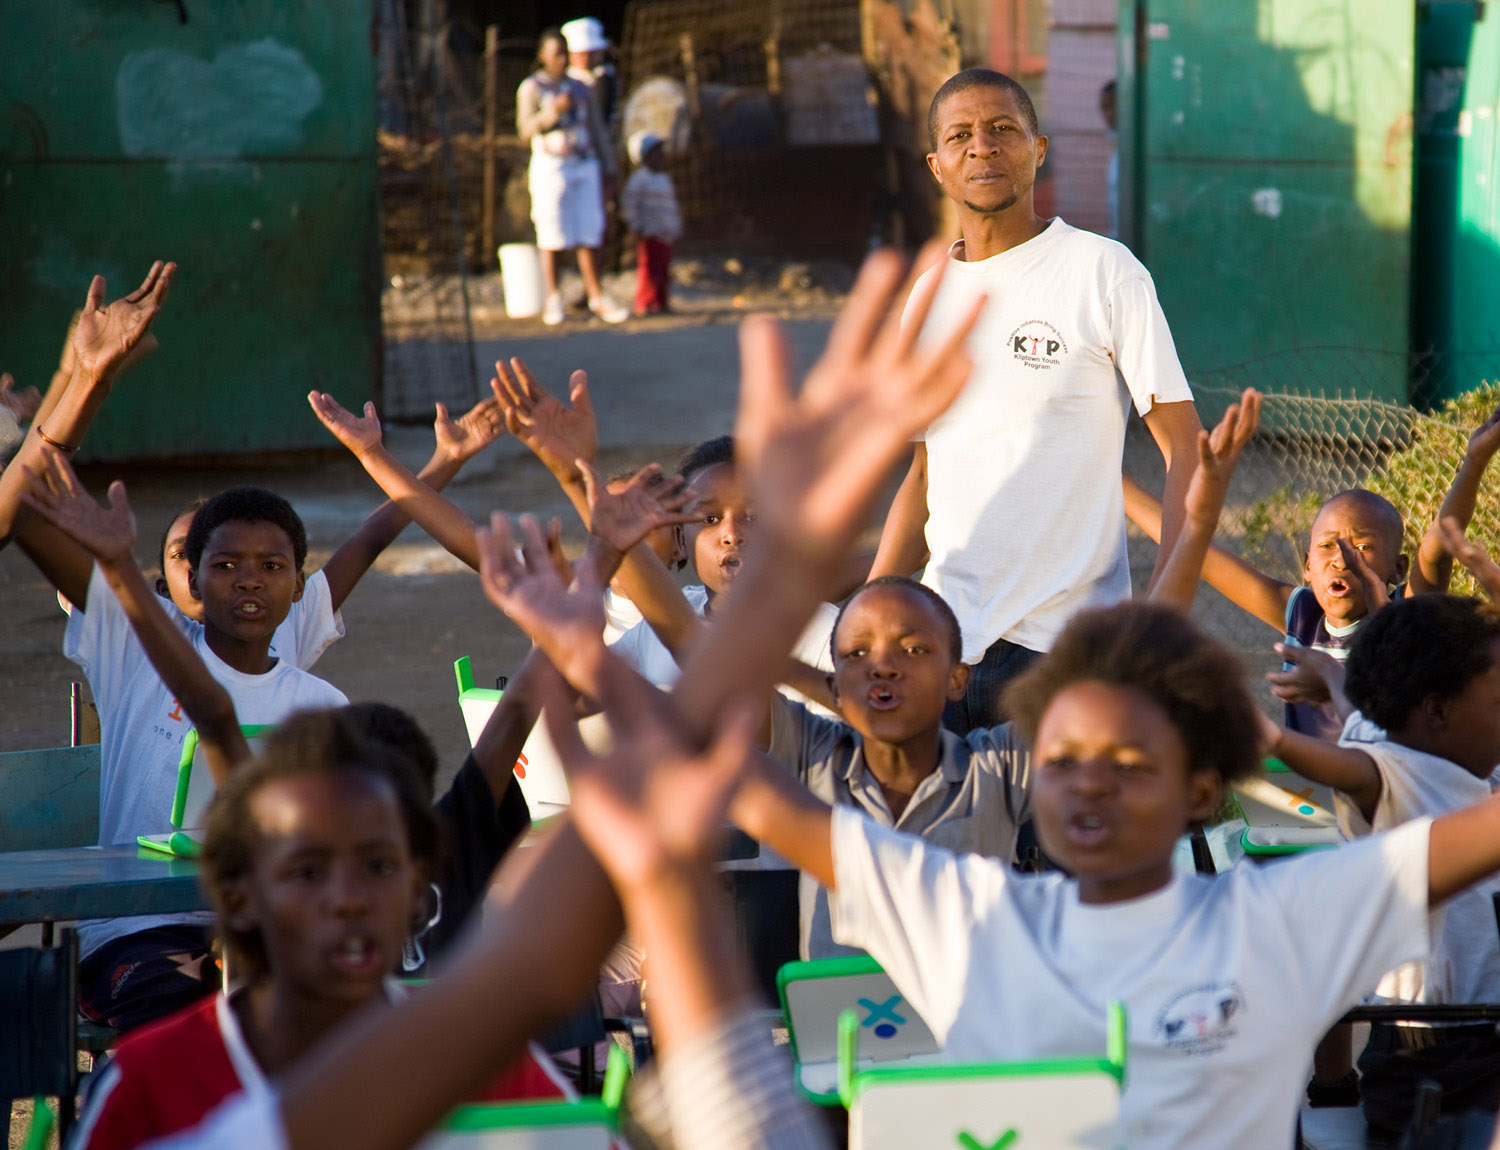 ©2008 harlan erskine, Teacher, Kliptown Youth Project, Johannesburg, South Africa